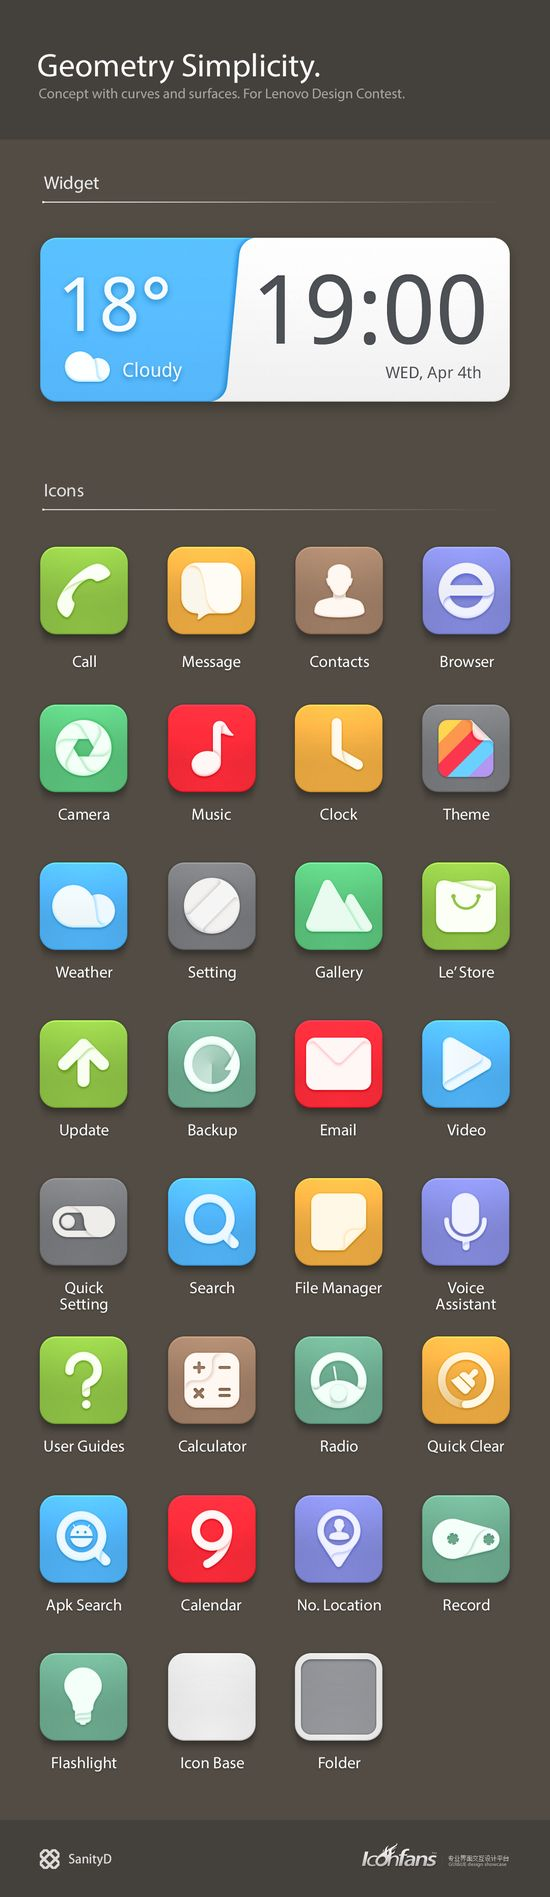 Simple, flat icons